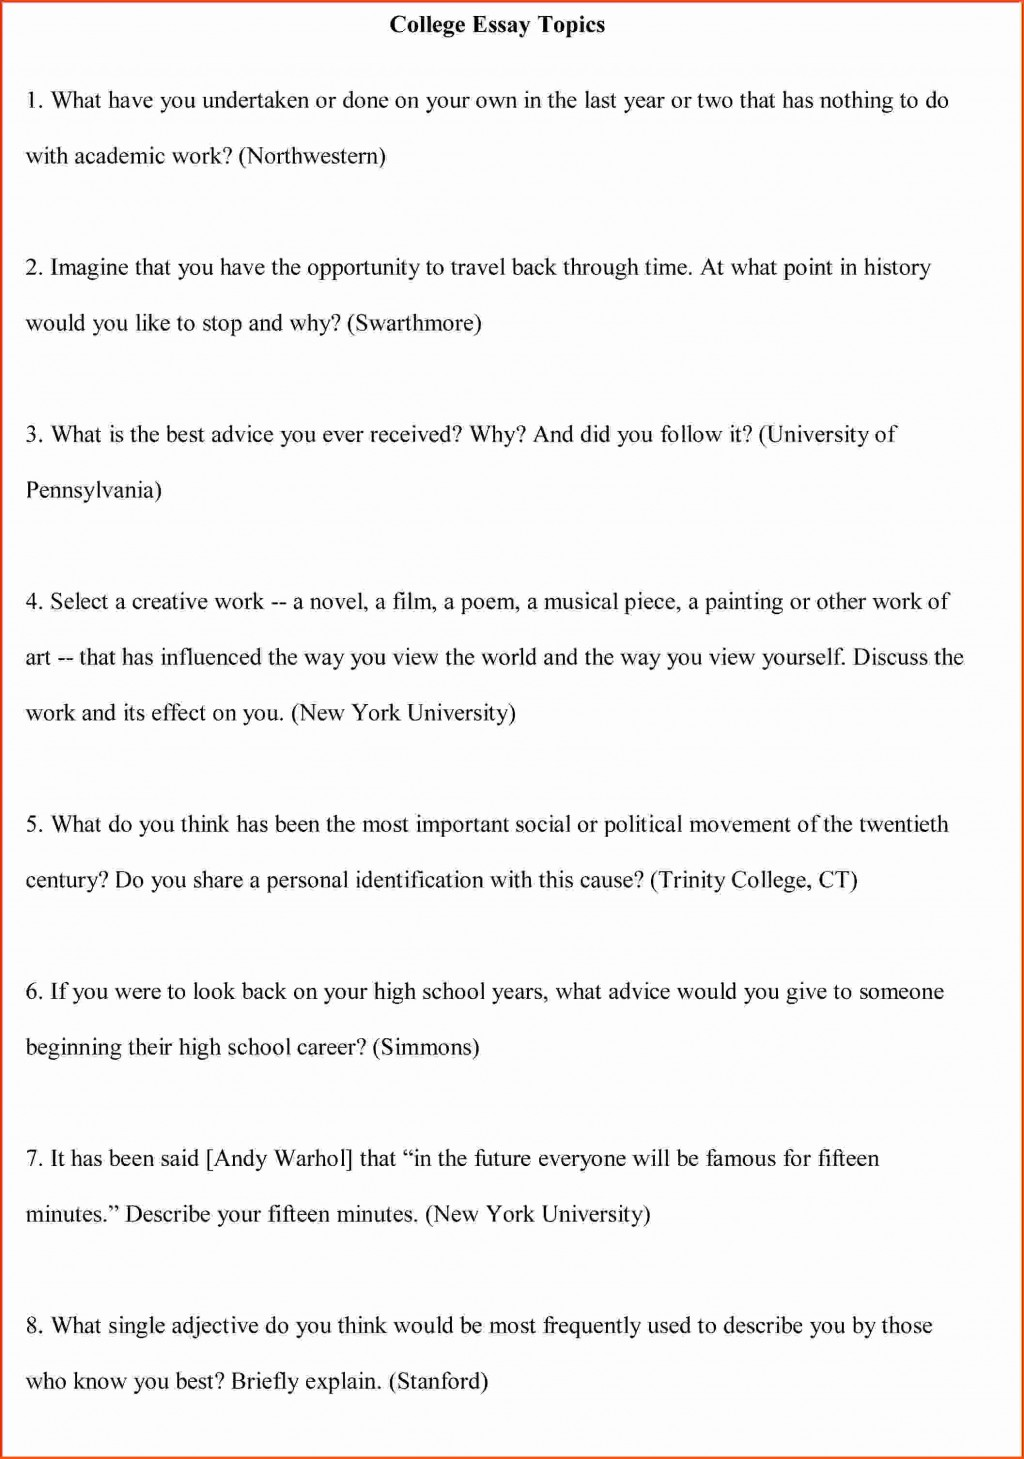 013 Best Essays Creative Nonfiction Essay Examples Resume Template And Cover Letter Response Example Writing S Eng Introduction Higher English Side College Exceptional 2017 Video 2018 Of All Time Reddit Large